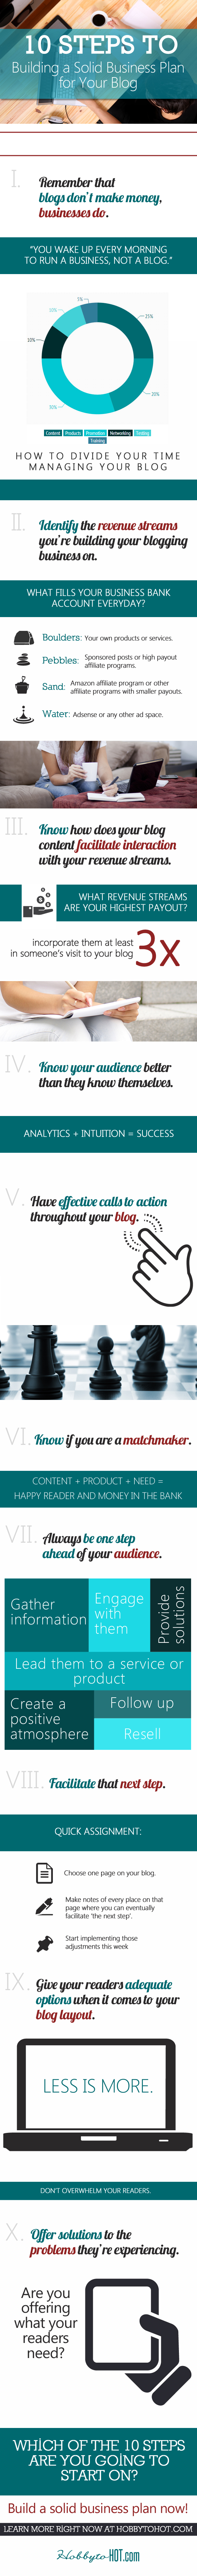 10 Keys to Making Your Business Blog Successful